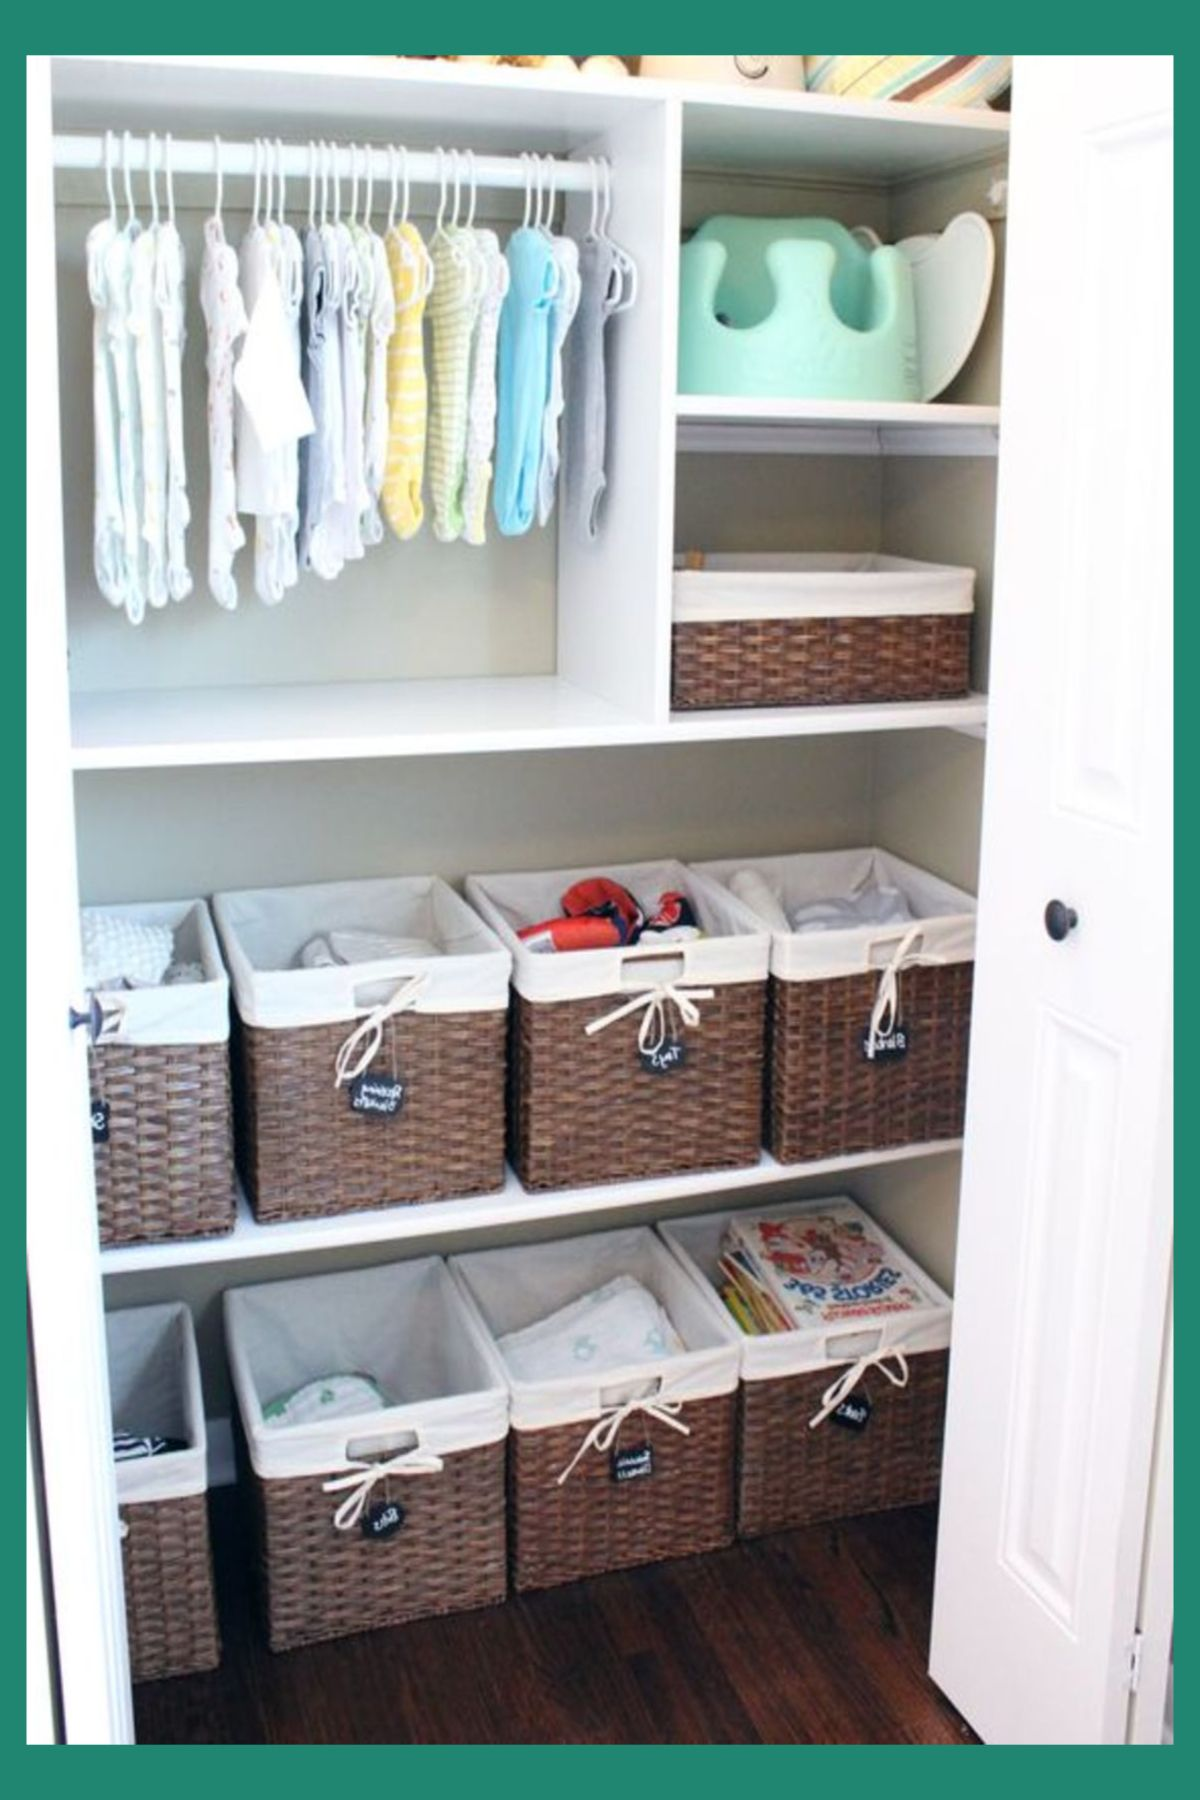 Nursery Closet Organization Ideas Baby Storage And For Room Nurseryclosetorganization Babyroomstorage Babynursery